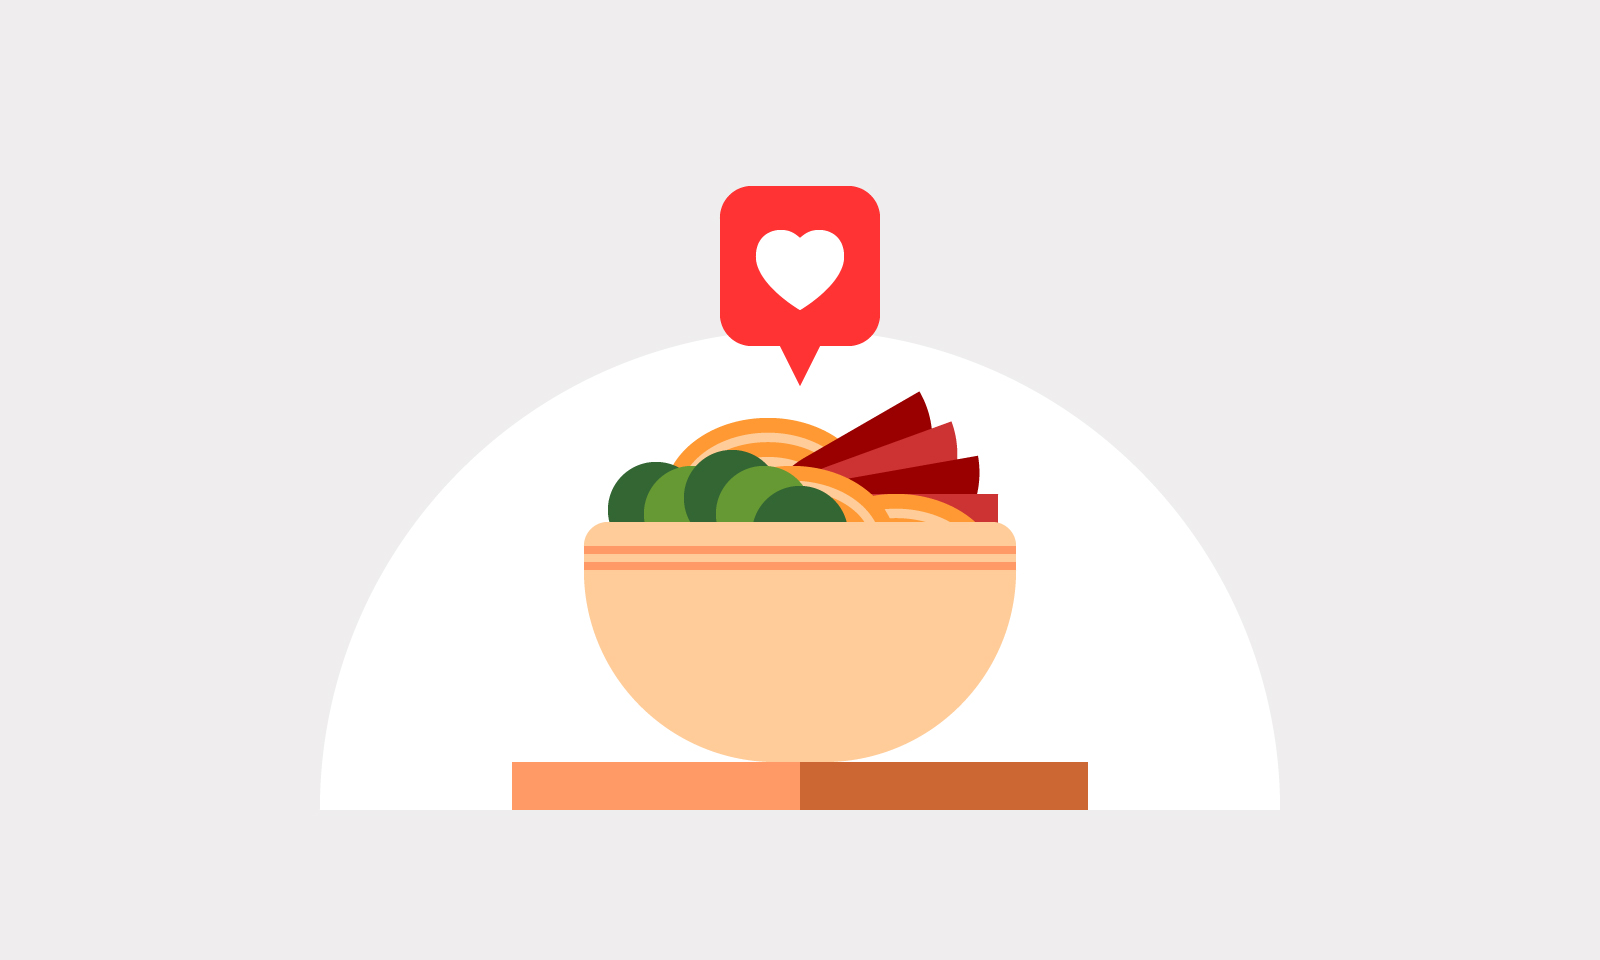 Illustration of a bowl of vegetables, meat and noodles with a heart icon above it